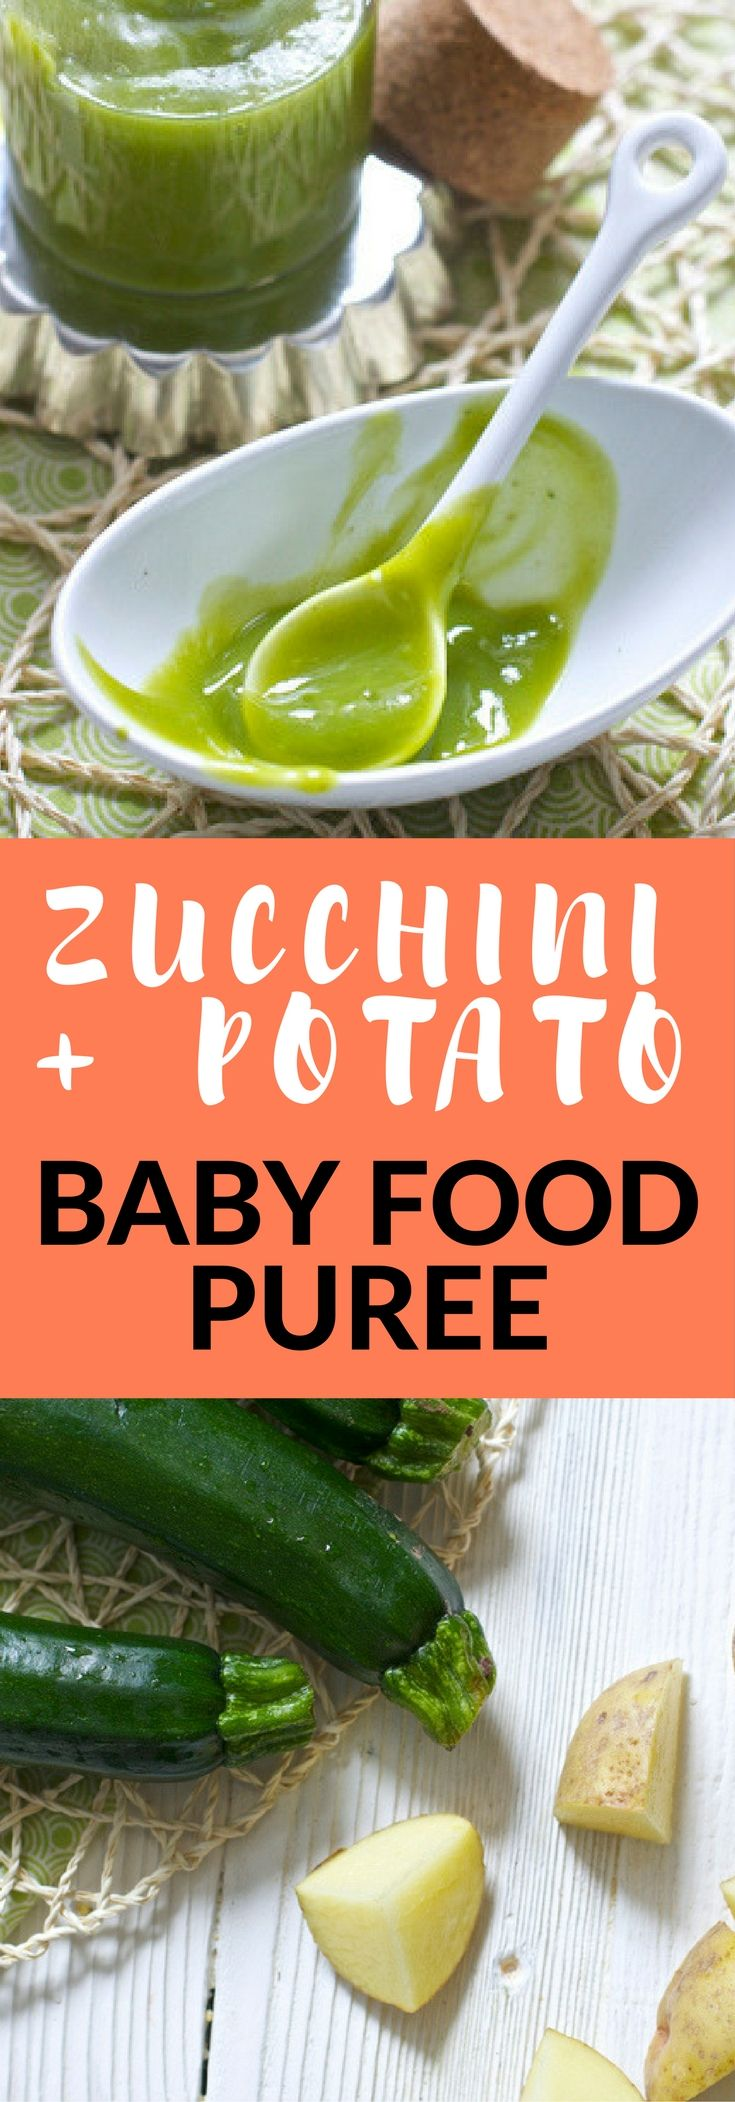 Zucchini potato puree zucchini homemade and babies this delicious homemade zucchini potato baby food puree is a soft and creamy puree that forumfinder Images